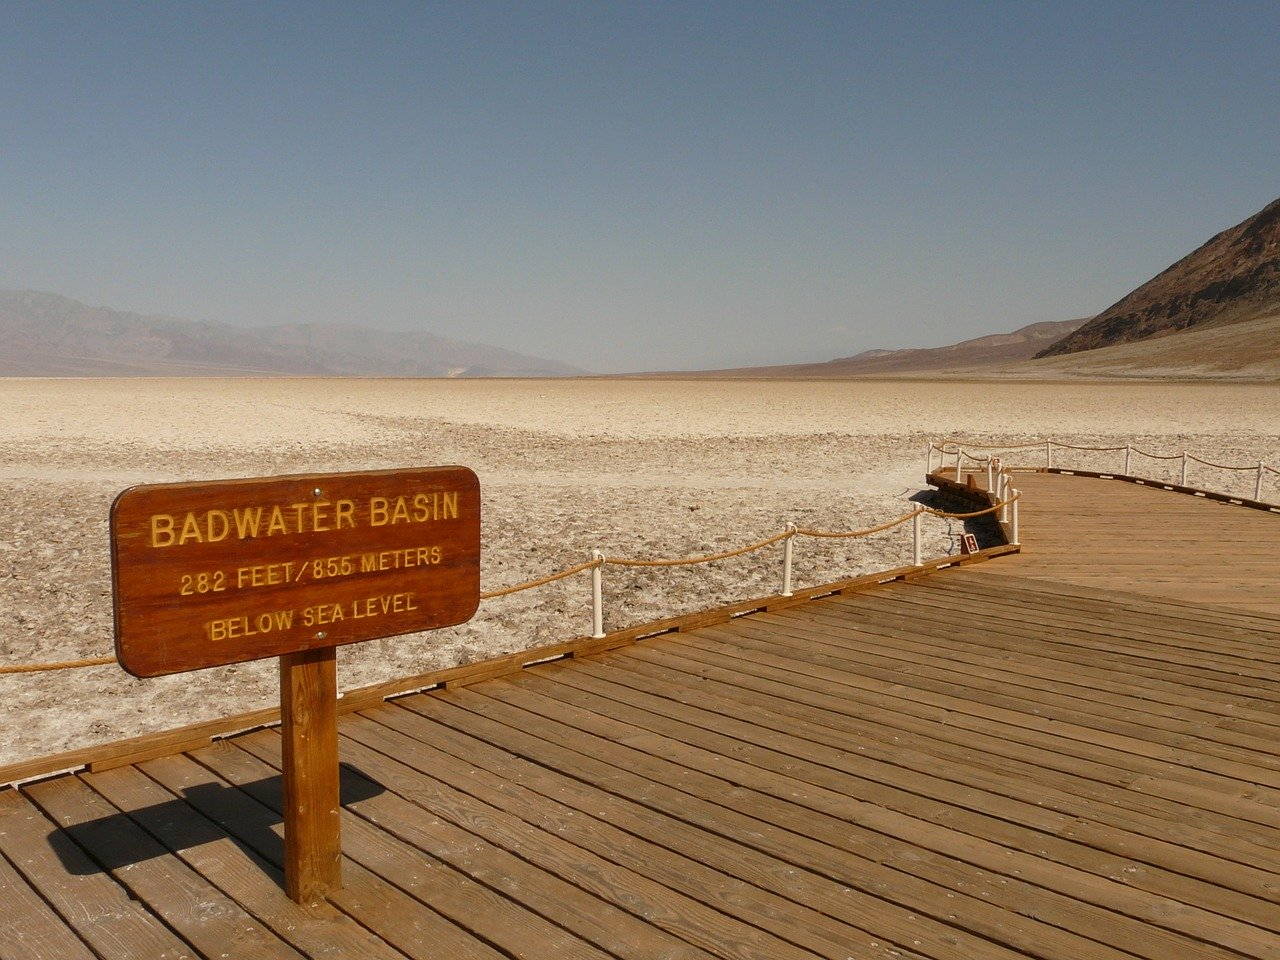 Badwater Basin at Death Valley